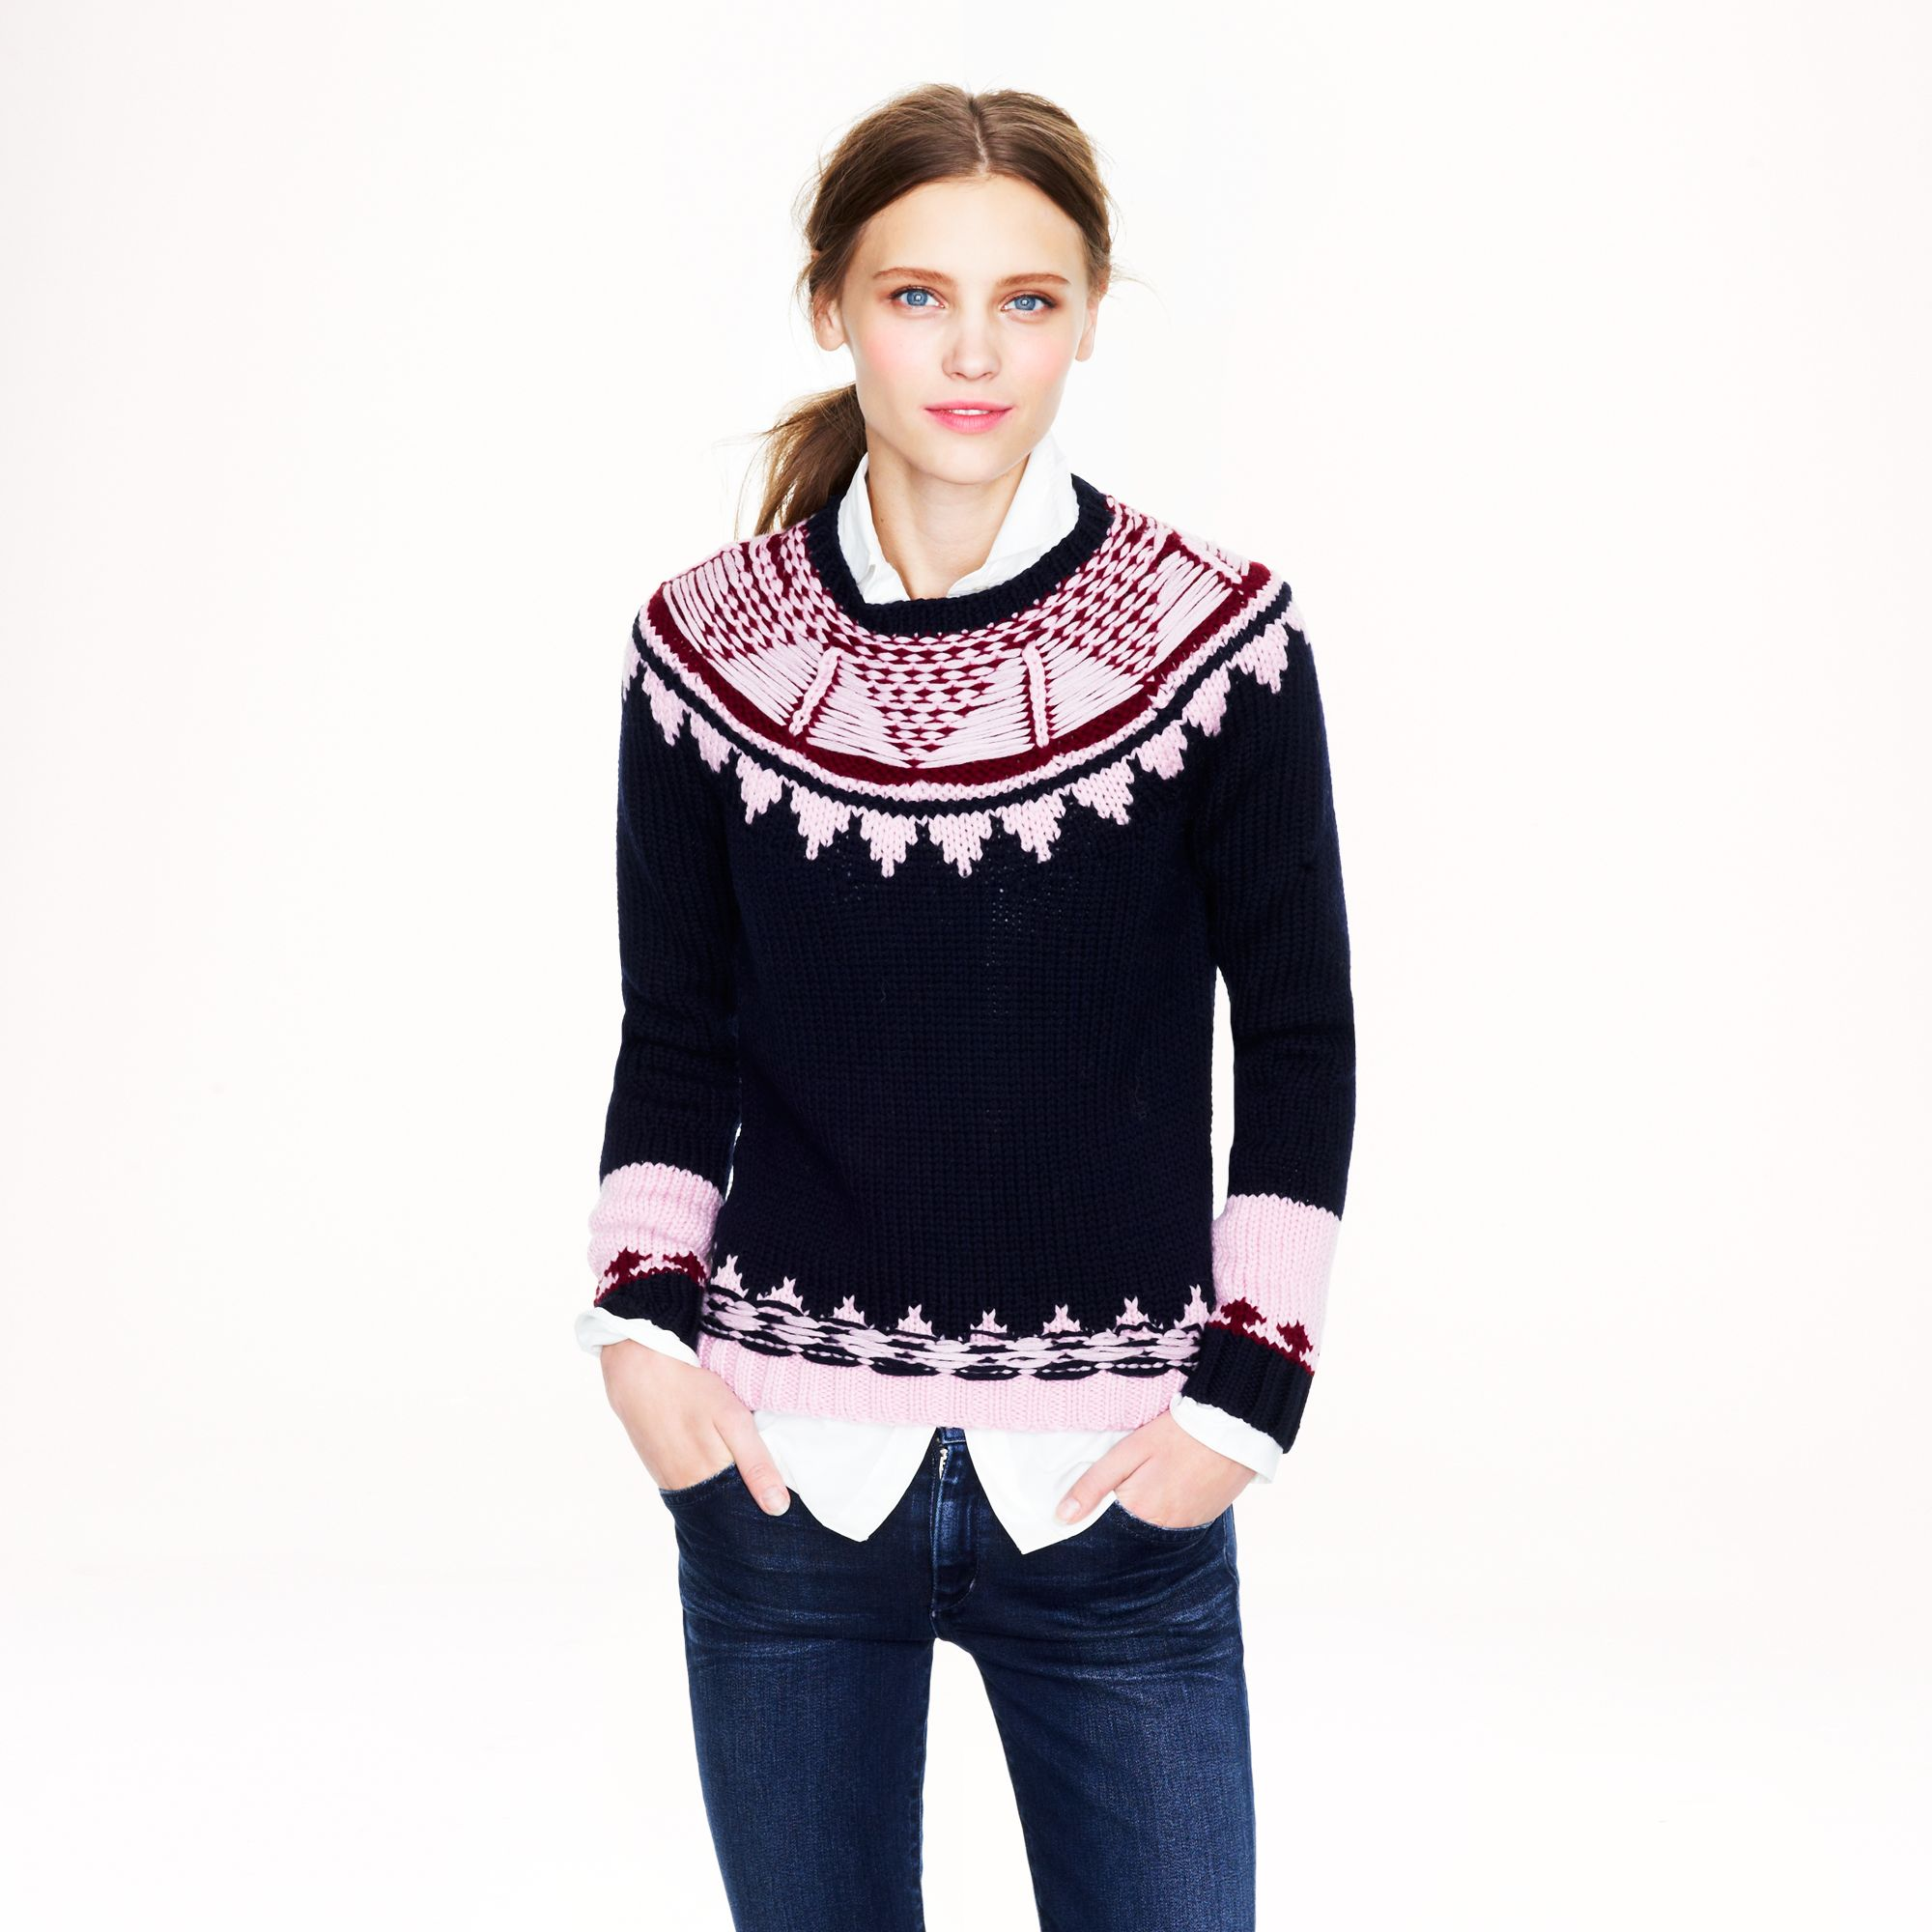 J.crew Handknit Fair Isle Sweater in Pink | Lyst